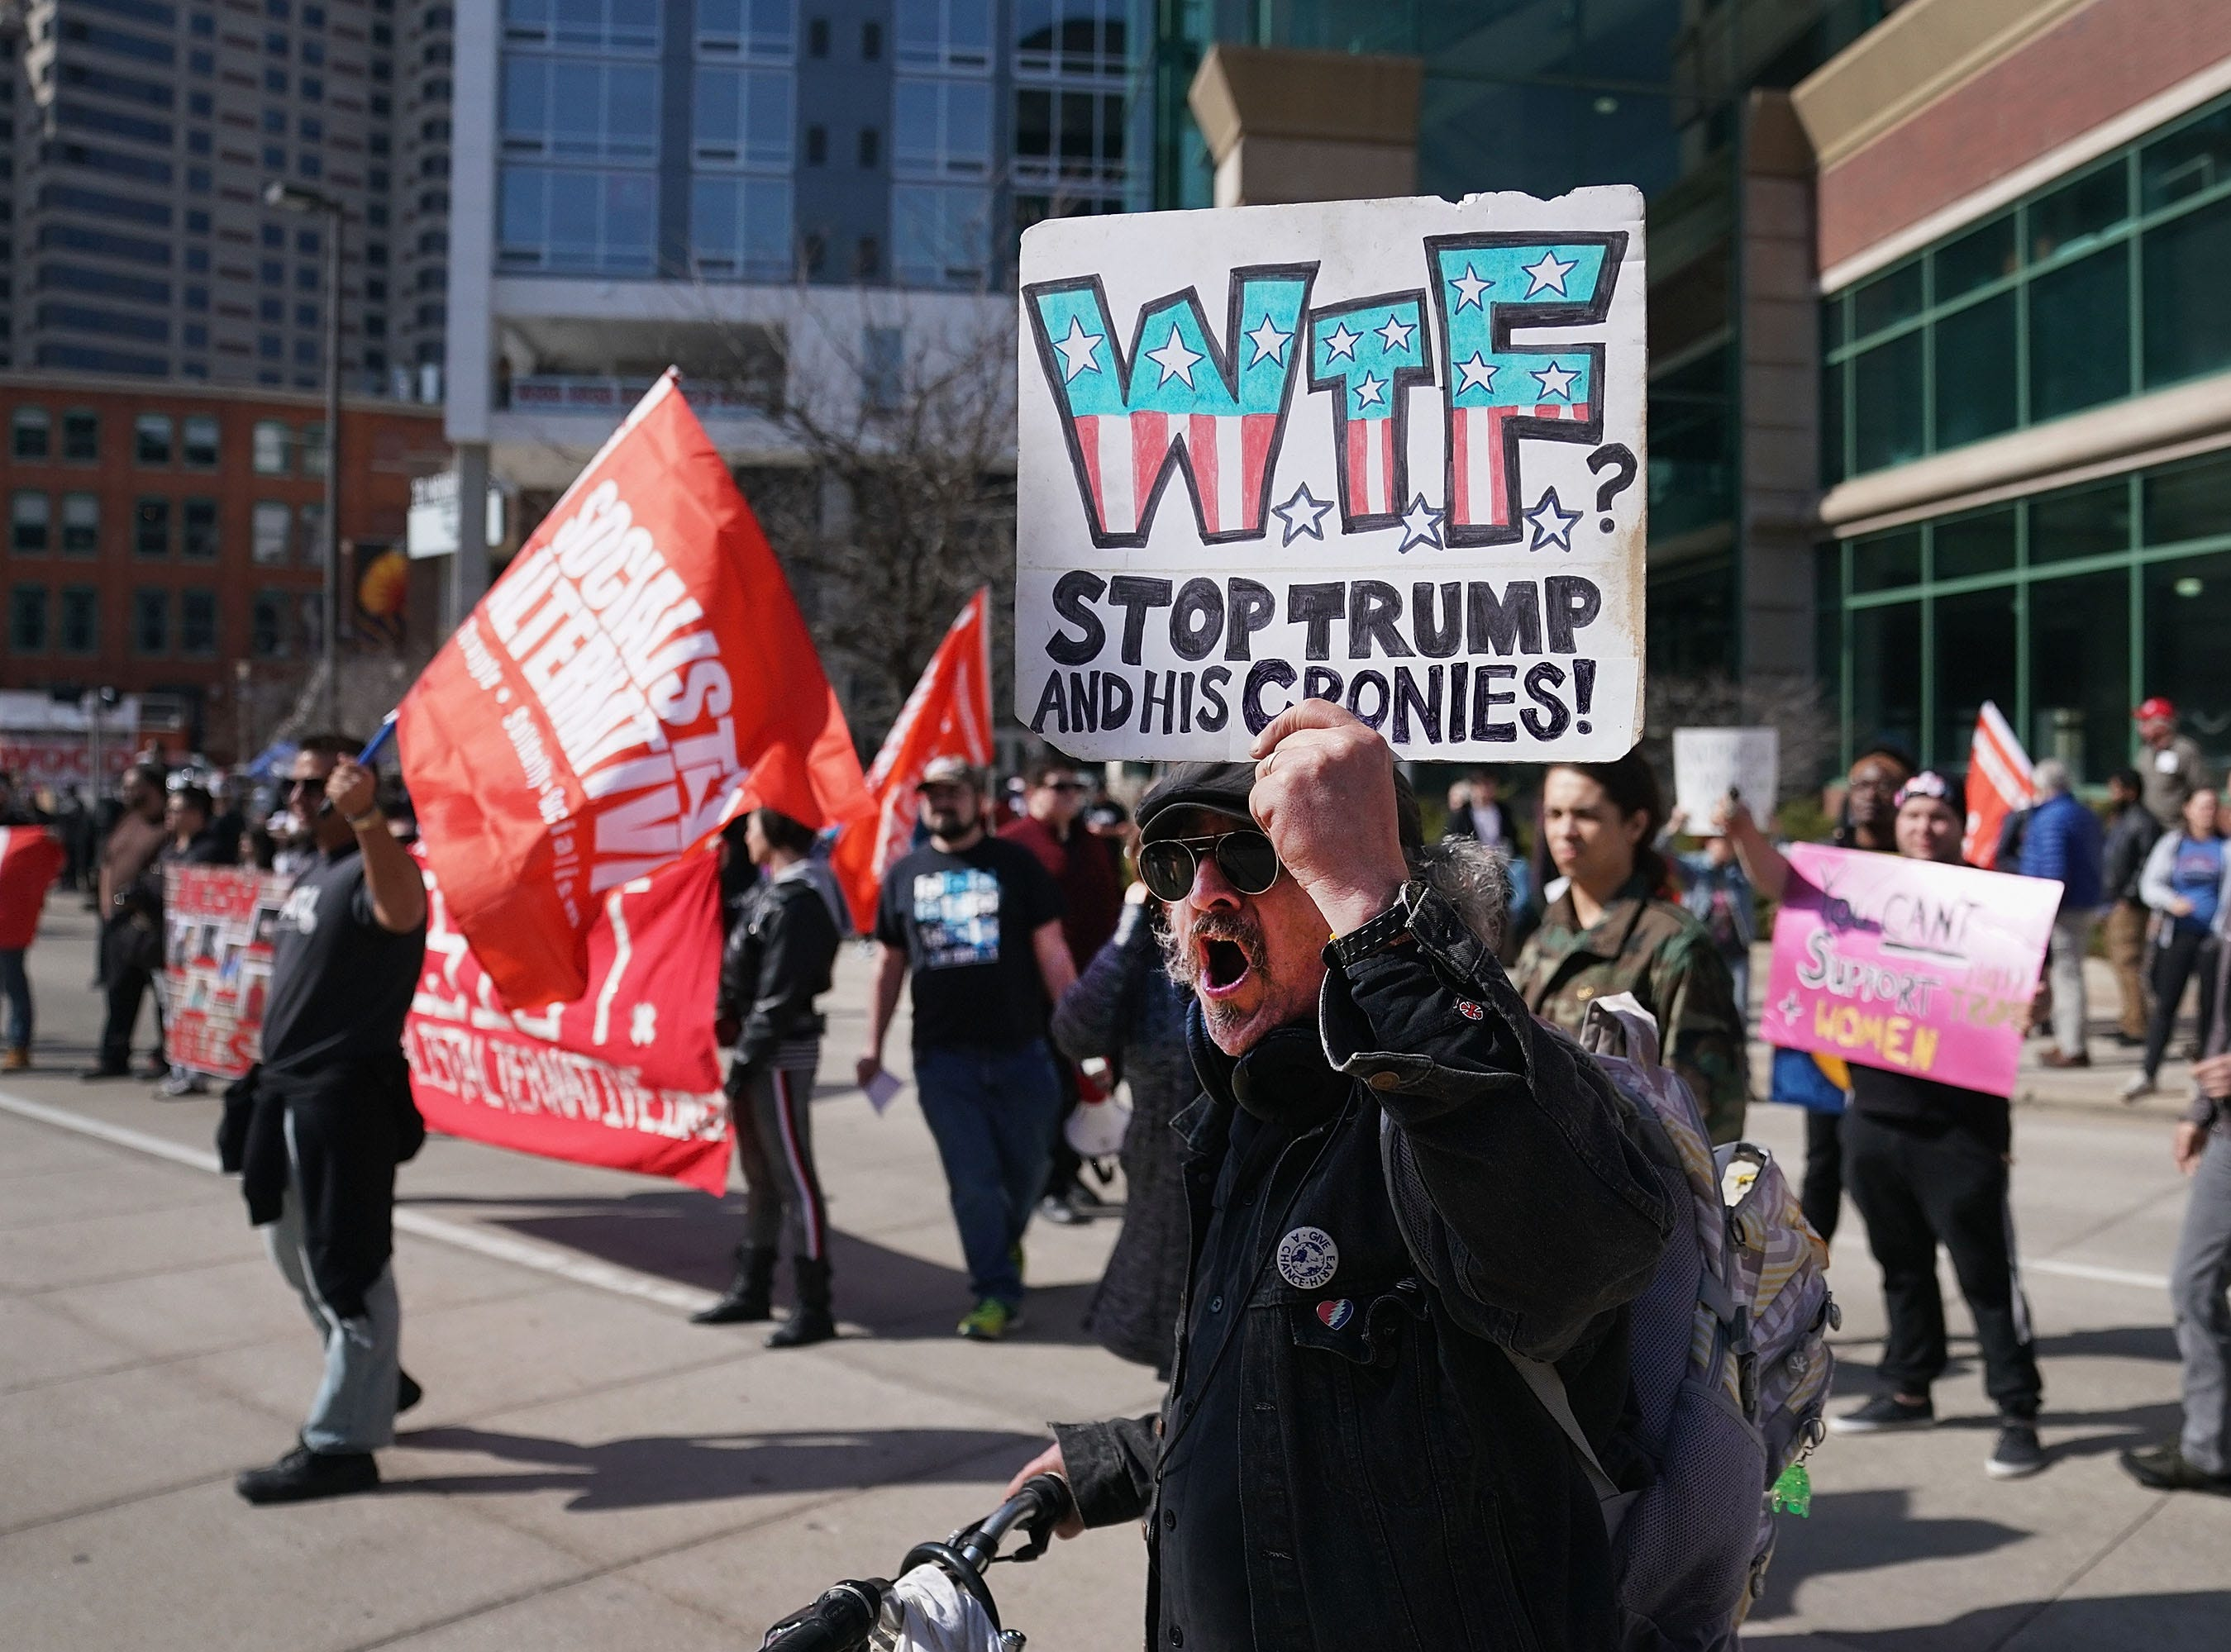 Anti-Trump demonstrators protest across from the Van Andel Arena where President Donald Trump was scheduled to hold a rally on March 28, 2019 in Grand Rapids, Michigan. Grand Rapids was the final city Trump visited during his 2016 campaign.